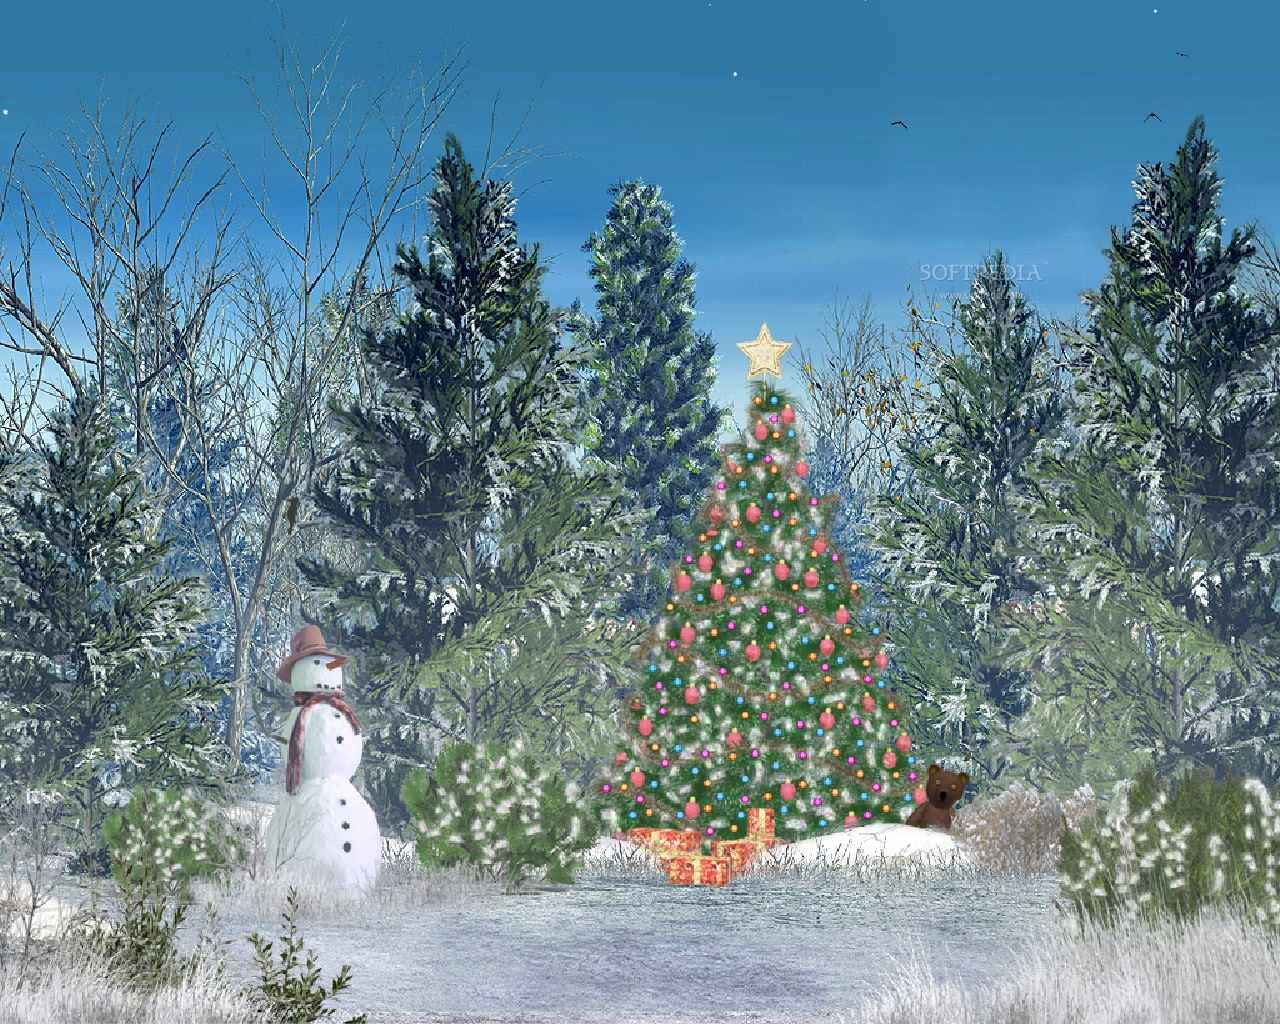 Christmas Background Gif Free Christmas Background Clipart Wallpapers Club Animated